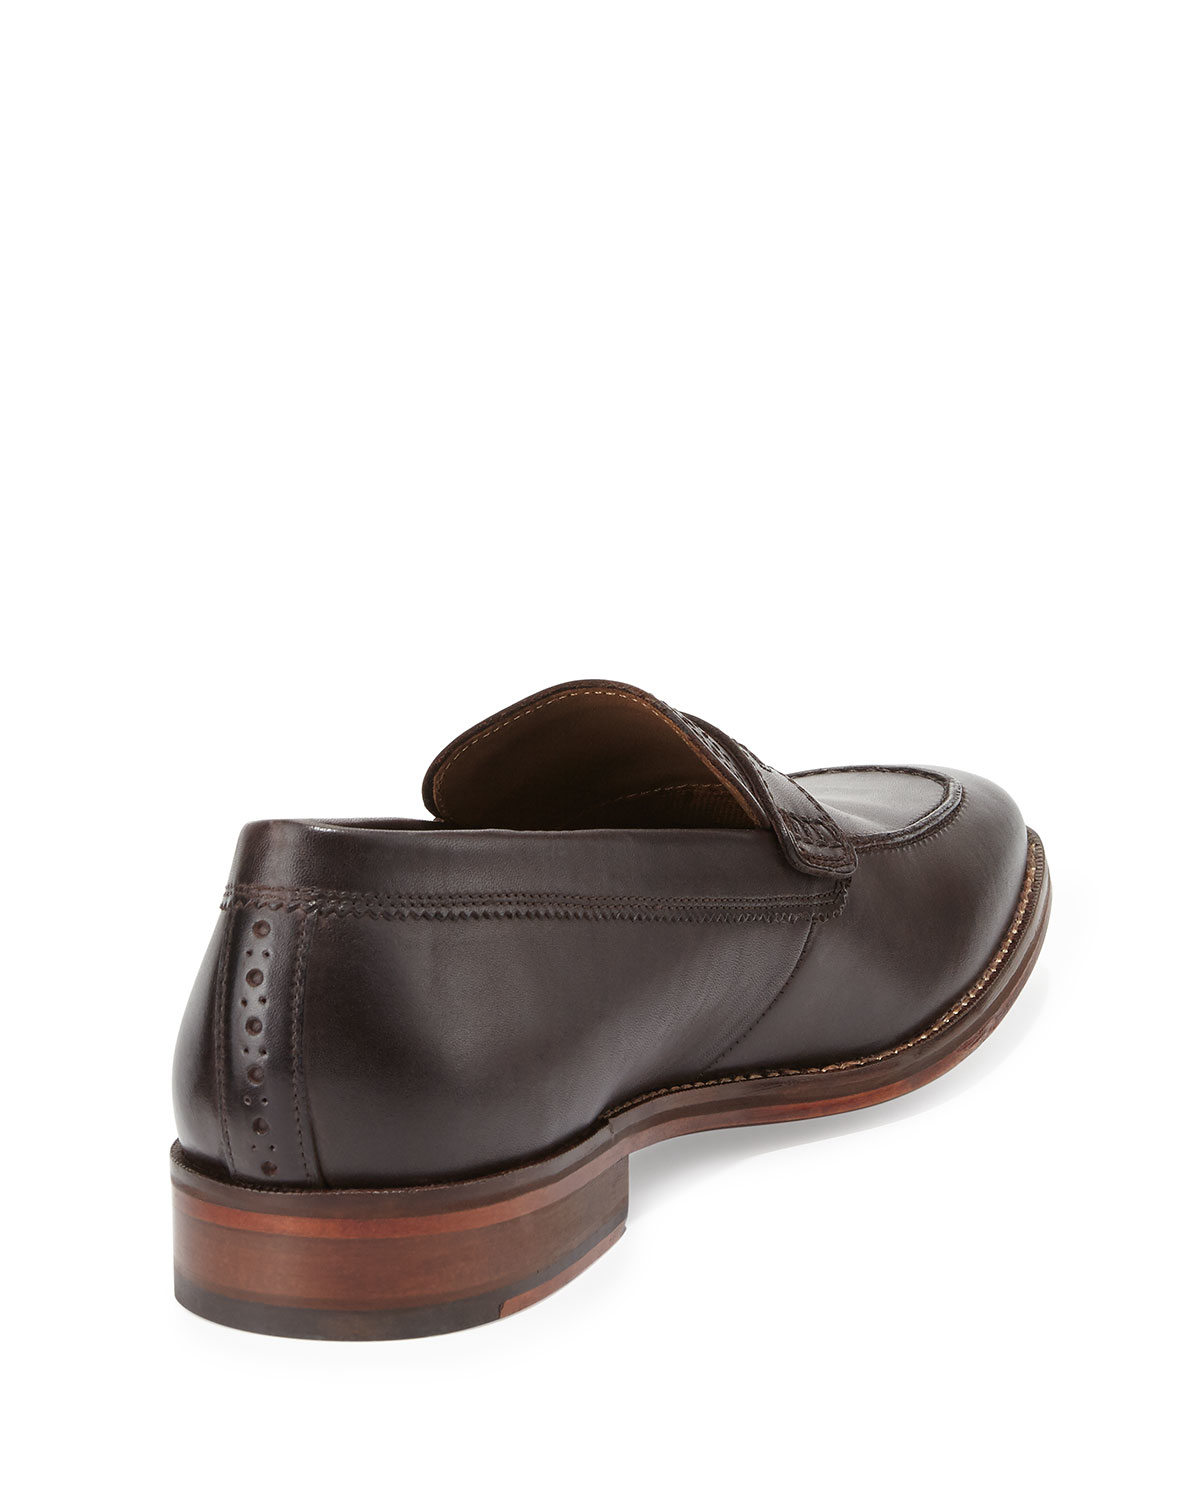 a9ef67a89f9 Gallery. Previously sold at  Last Call · Men s Penny Loafers ...